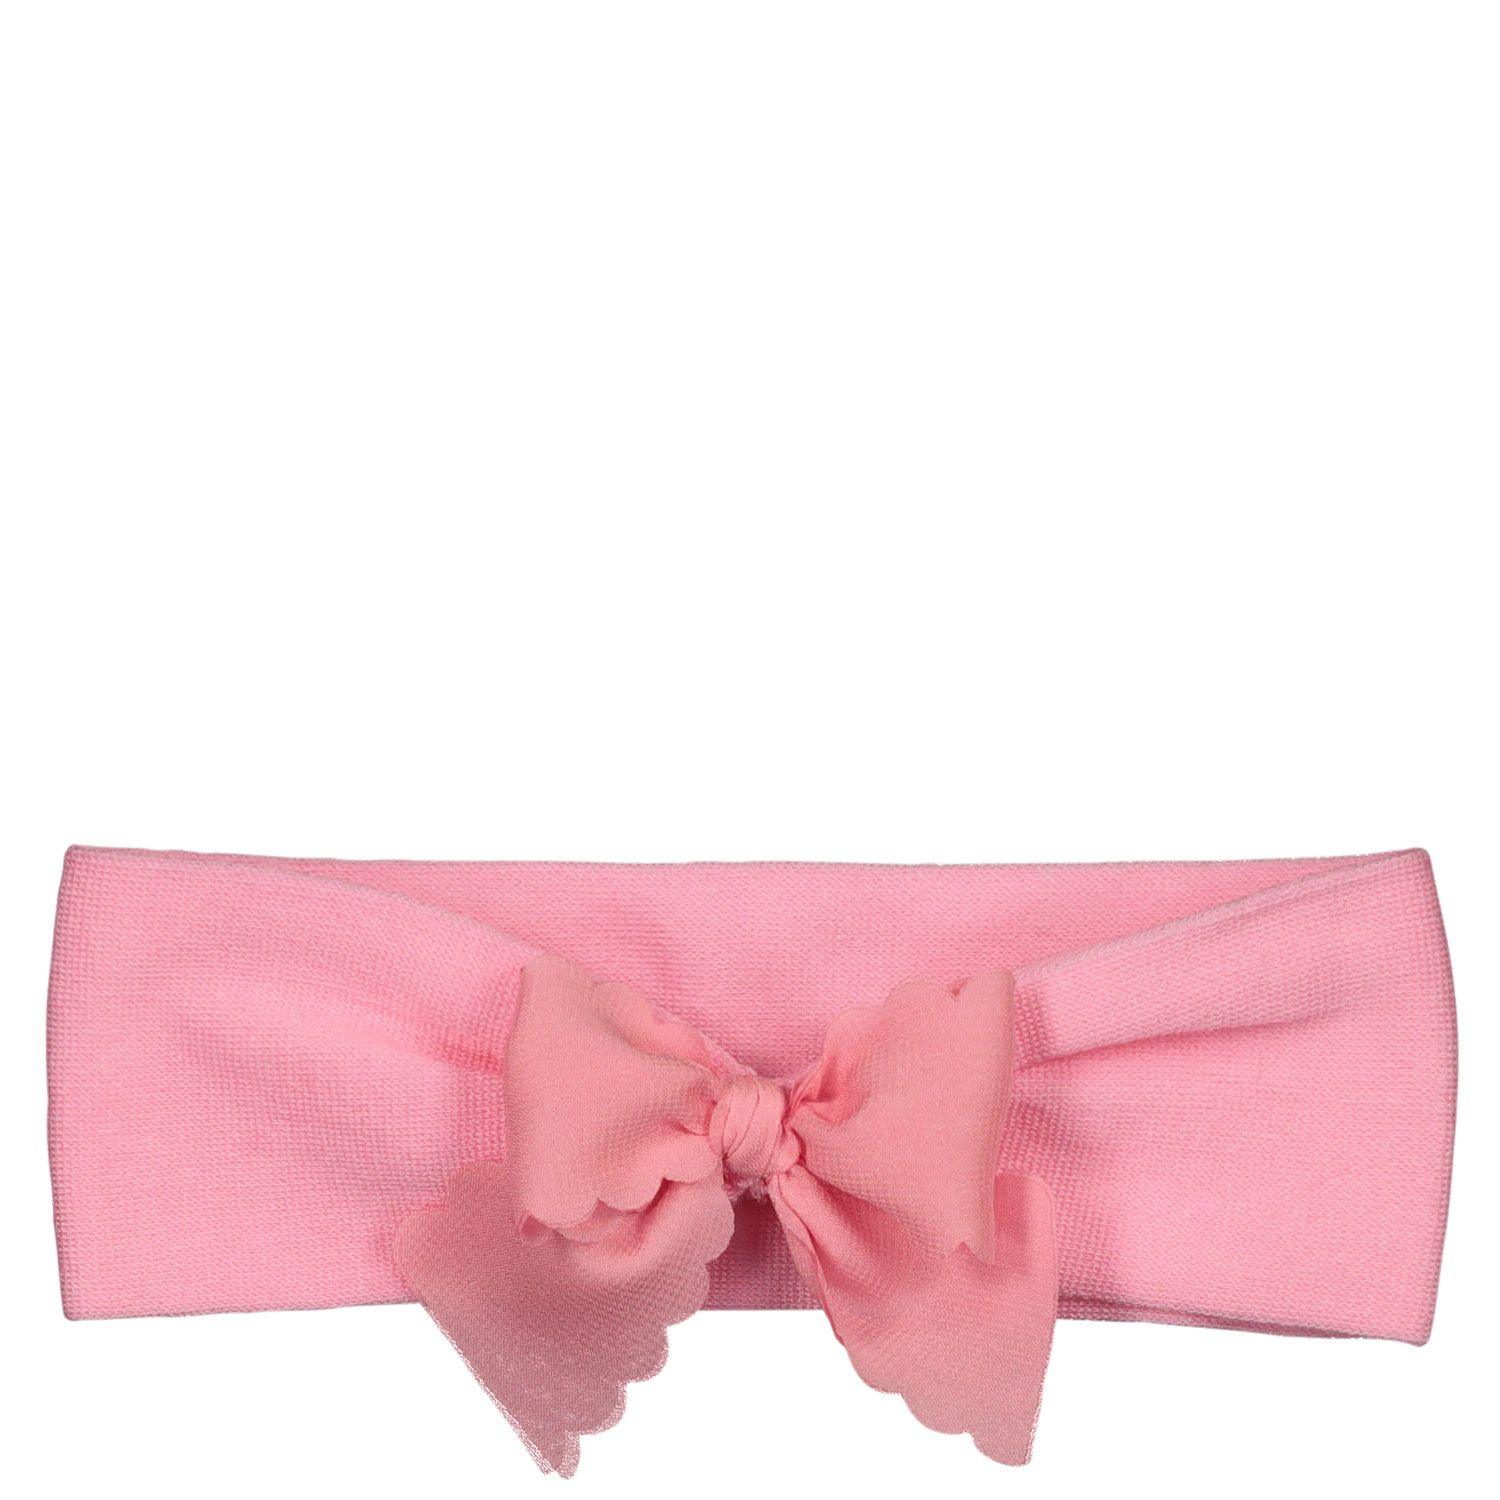 Picture of Story Loris 23339 baby accessory fuchsia